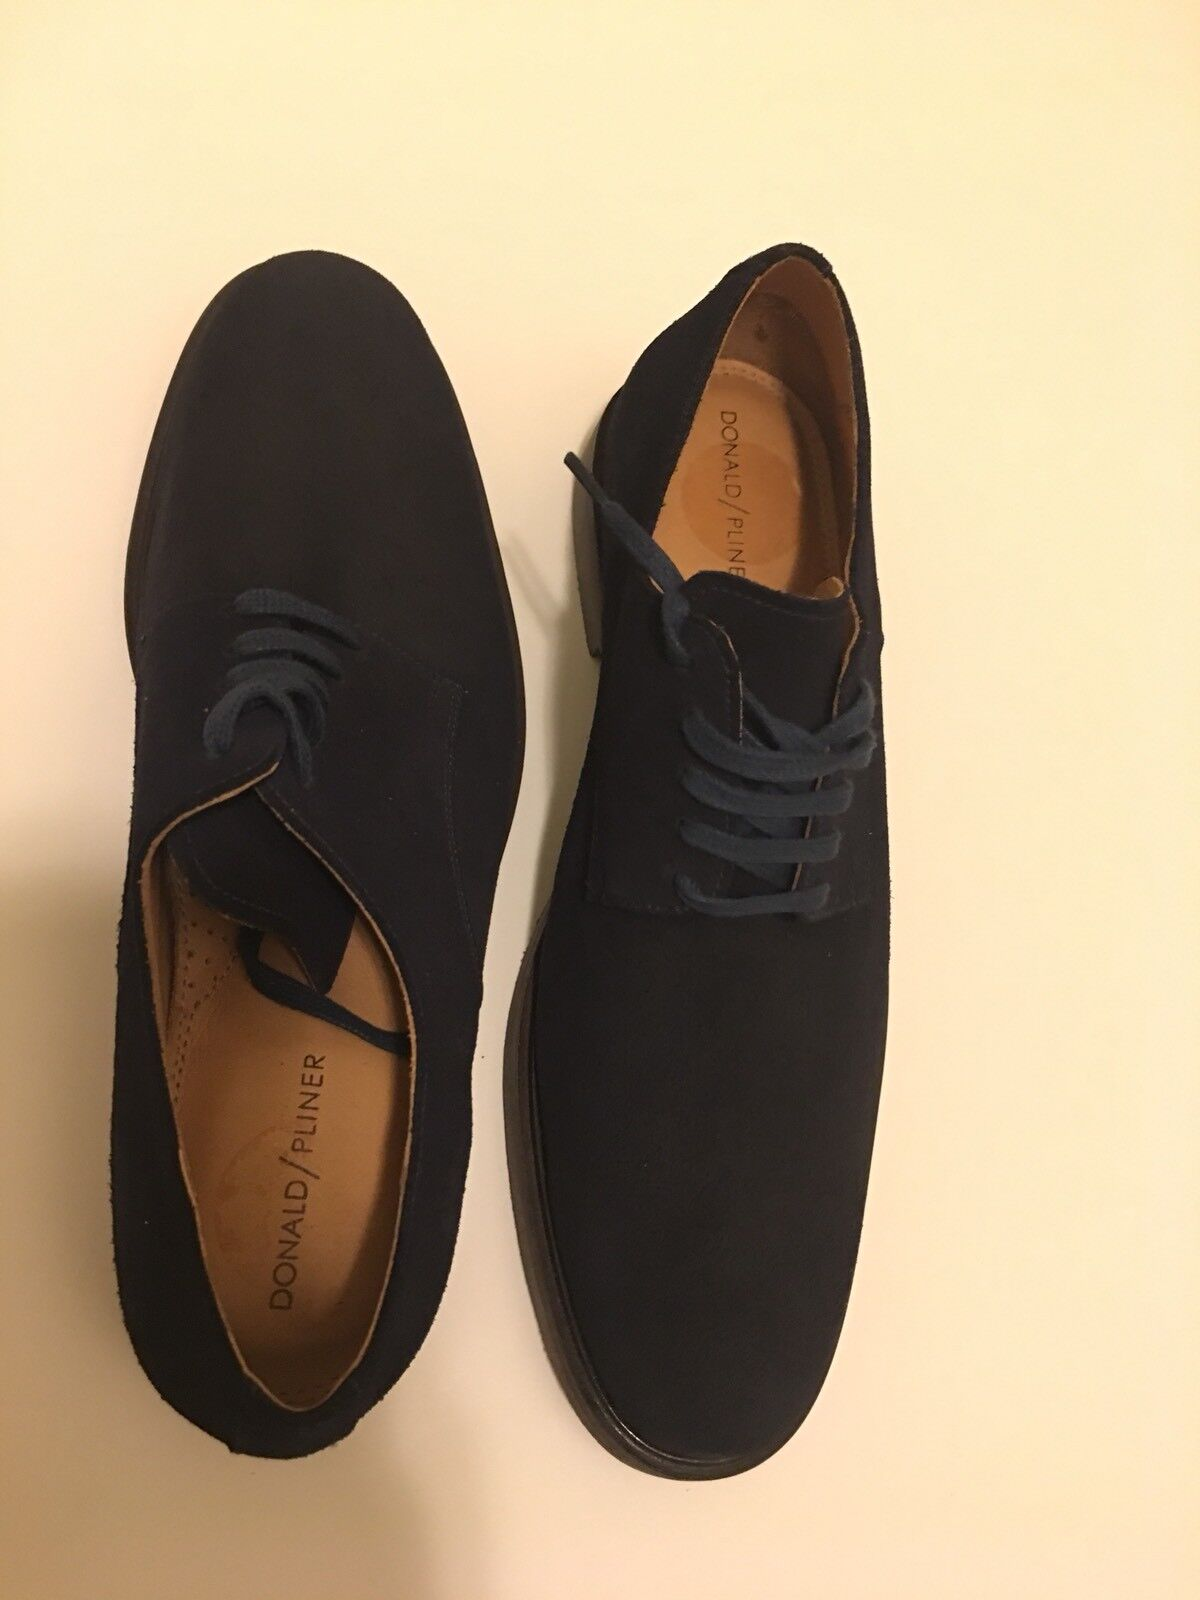 New Donald Pliner Placido bluee Suede Oxford USA Size 10.5 Retail  180